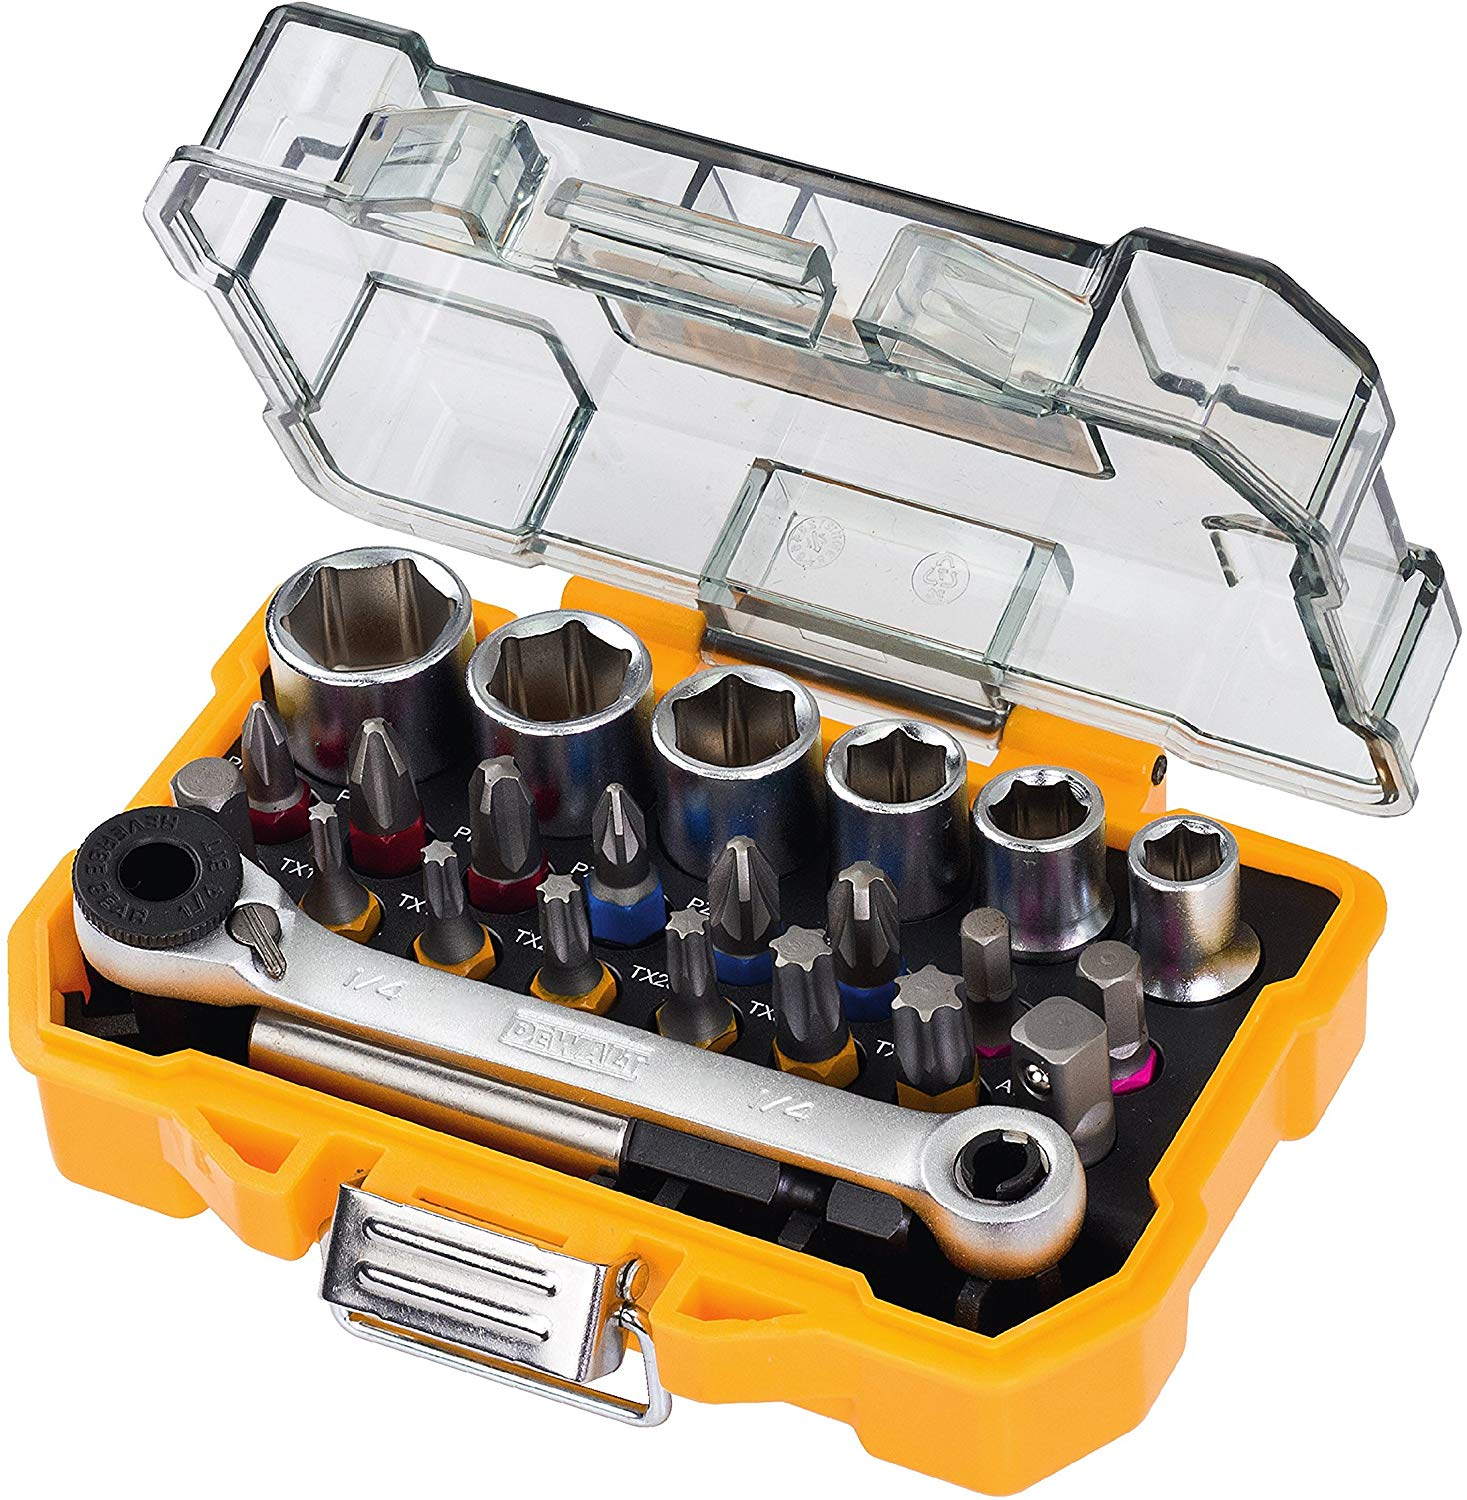 Dewalt 24 Piece High Performance Socket and Screwdriving Set; long-living sockets; (24 pieces); with case